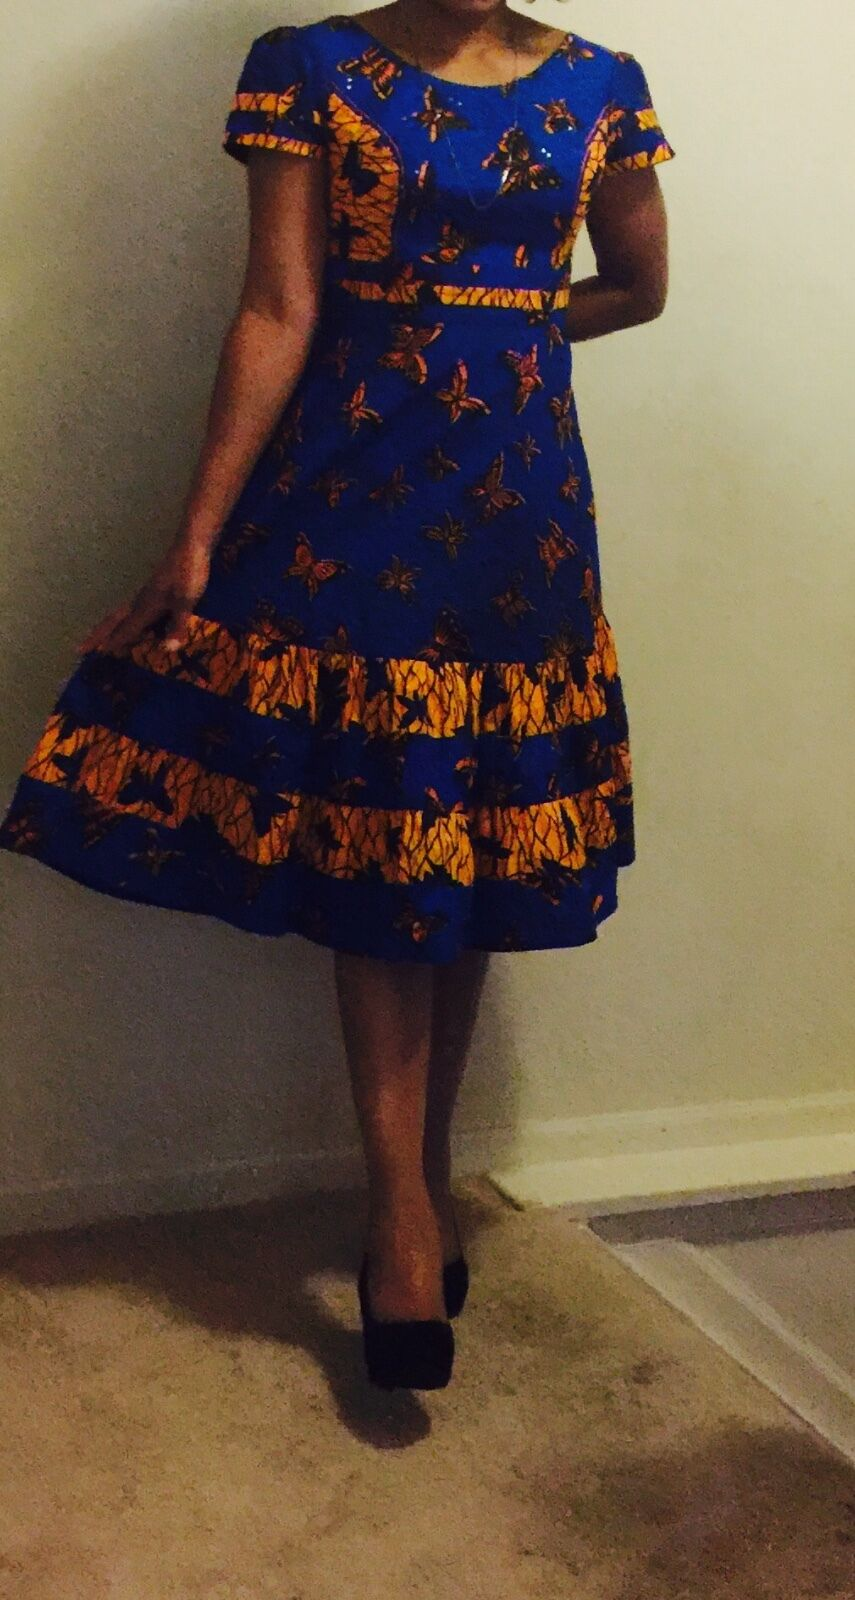 Simple but dressy short sleeved blueee and yellow ankara dress in size 14.